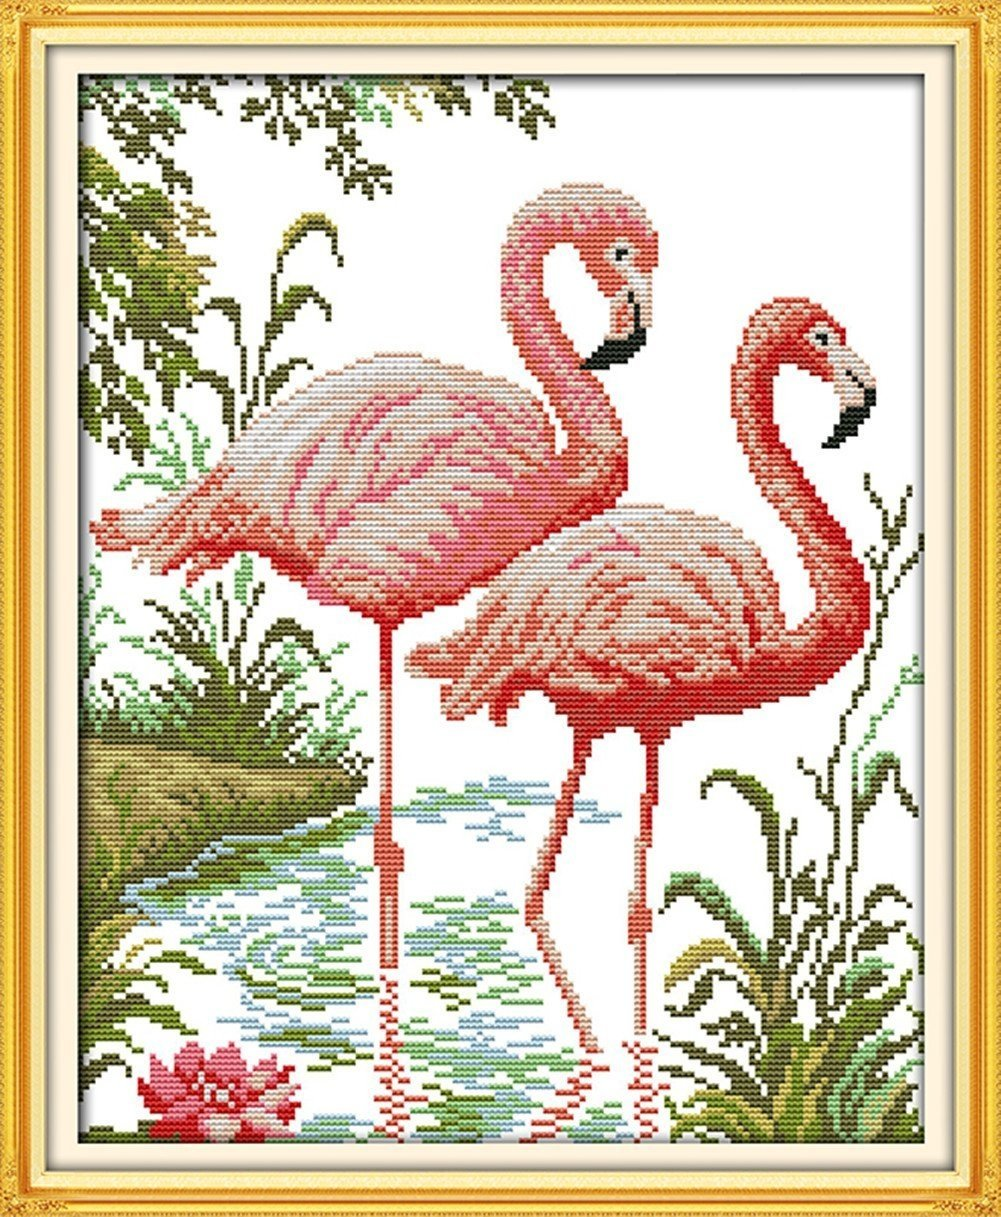 WHITE Two Flamingos CaptainCrafts Hots Cross Stitch Kits Patterns Embroidery Kit